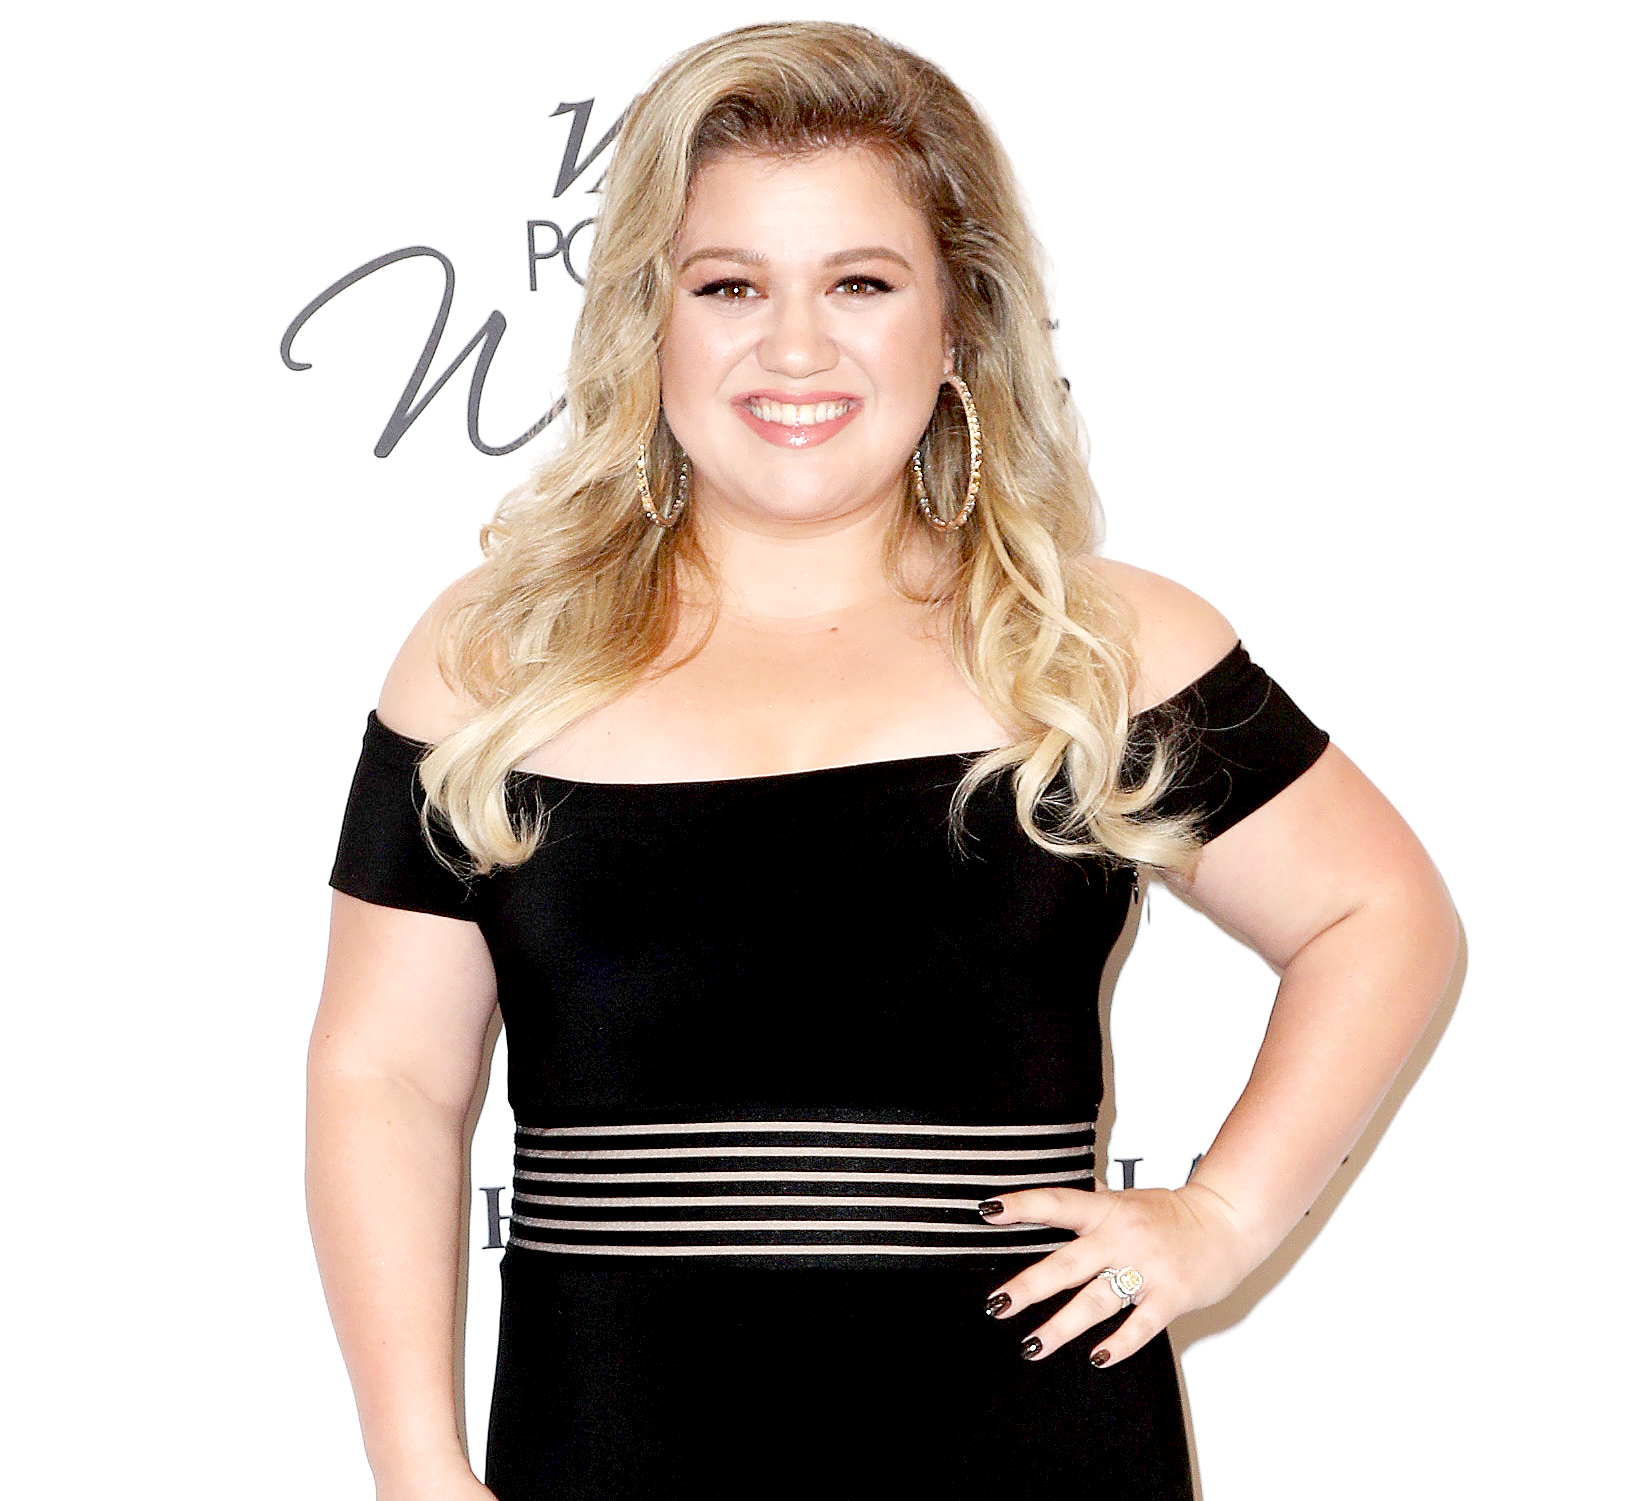 Kelly Clarkson attends the Variety's Power Of Women at the Beverly Wilshire Four Seasons Hotel on October 13, 2017 in Beverly Hills, California.